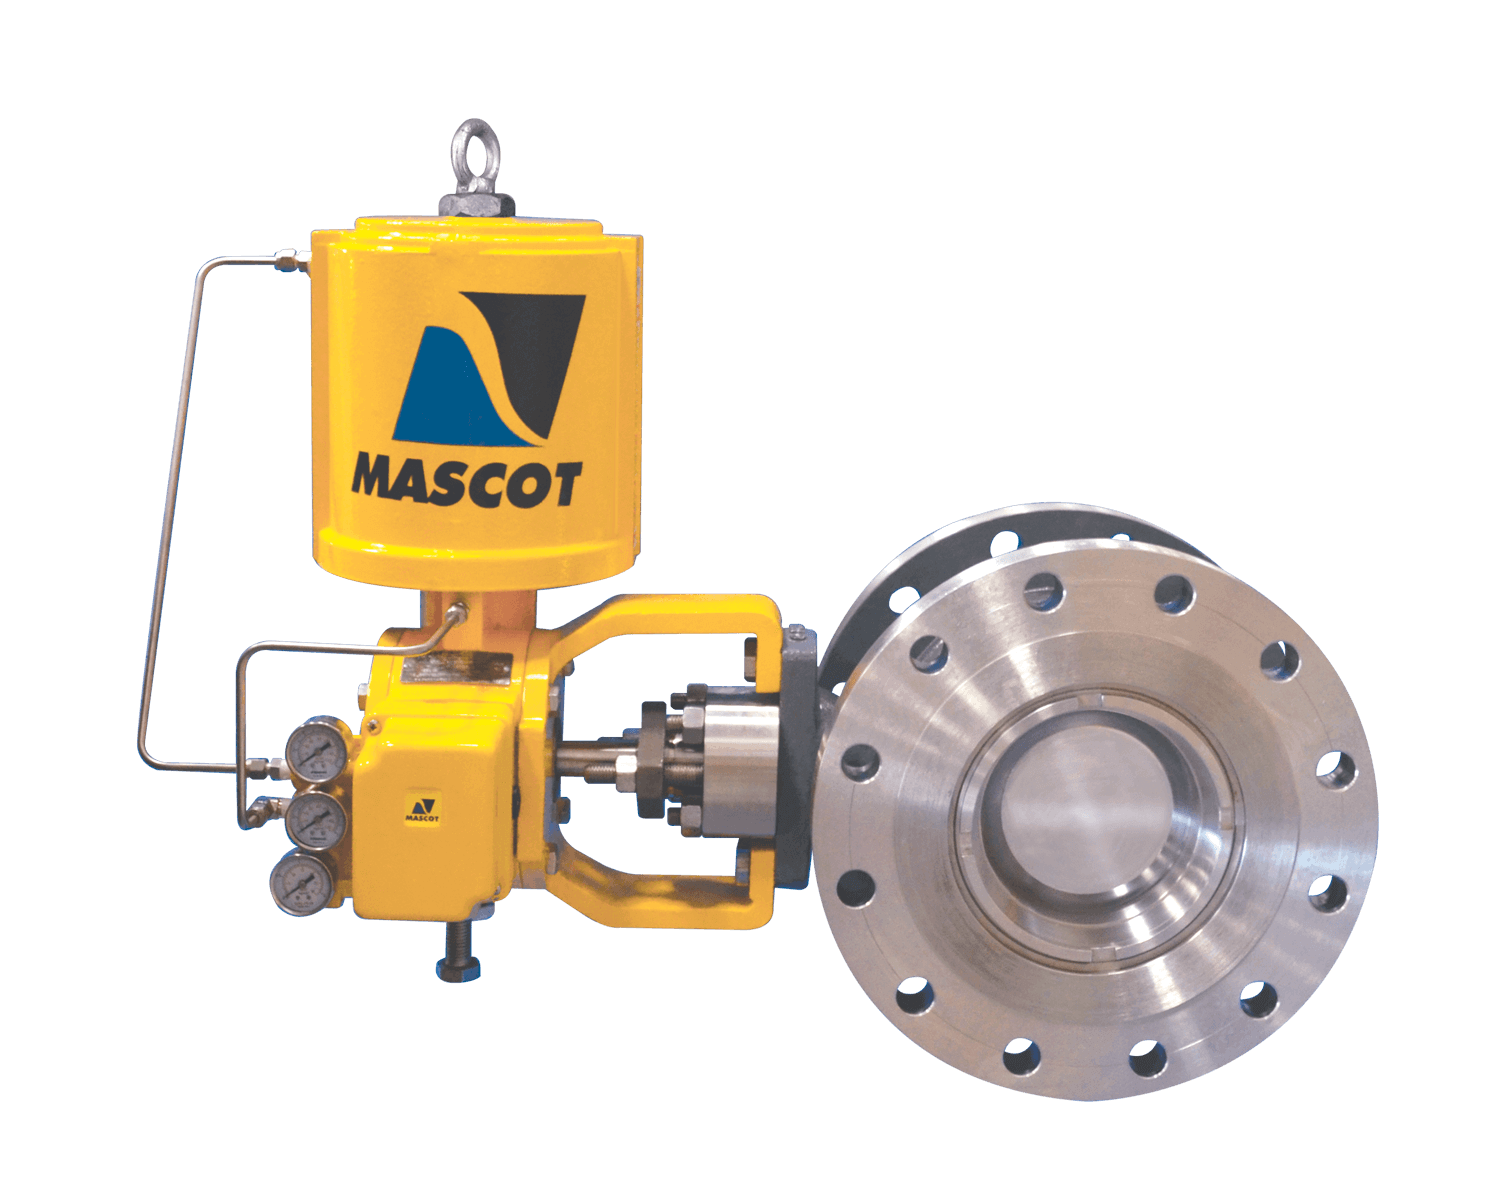 Mascot eflo eccentric plug valve the eflo offers a high performance rotary globe valve which provides precision control over extended life span through enhanced safety publicscrutiny Gallery